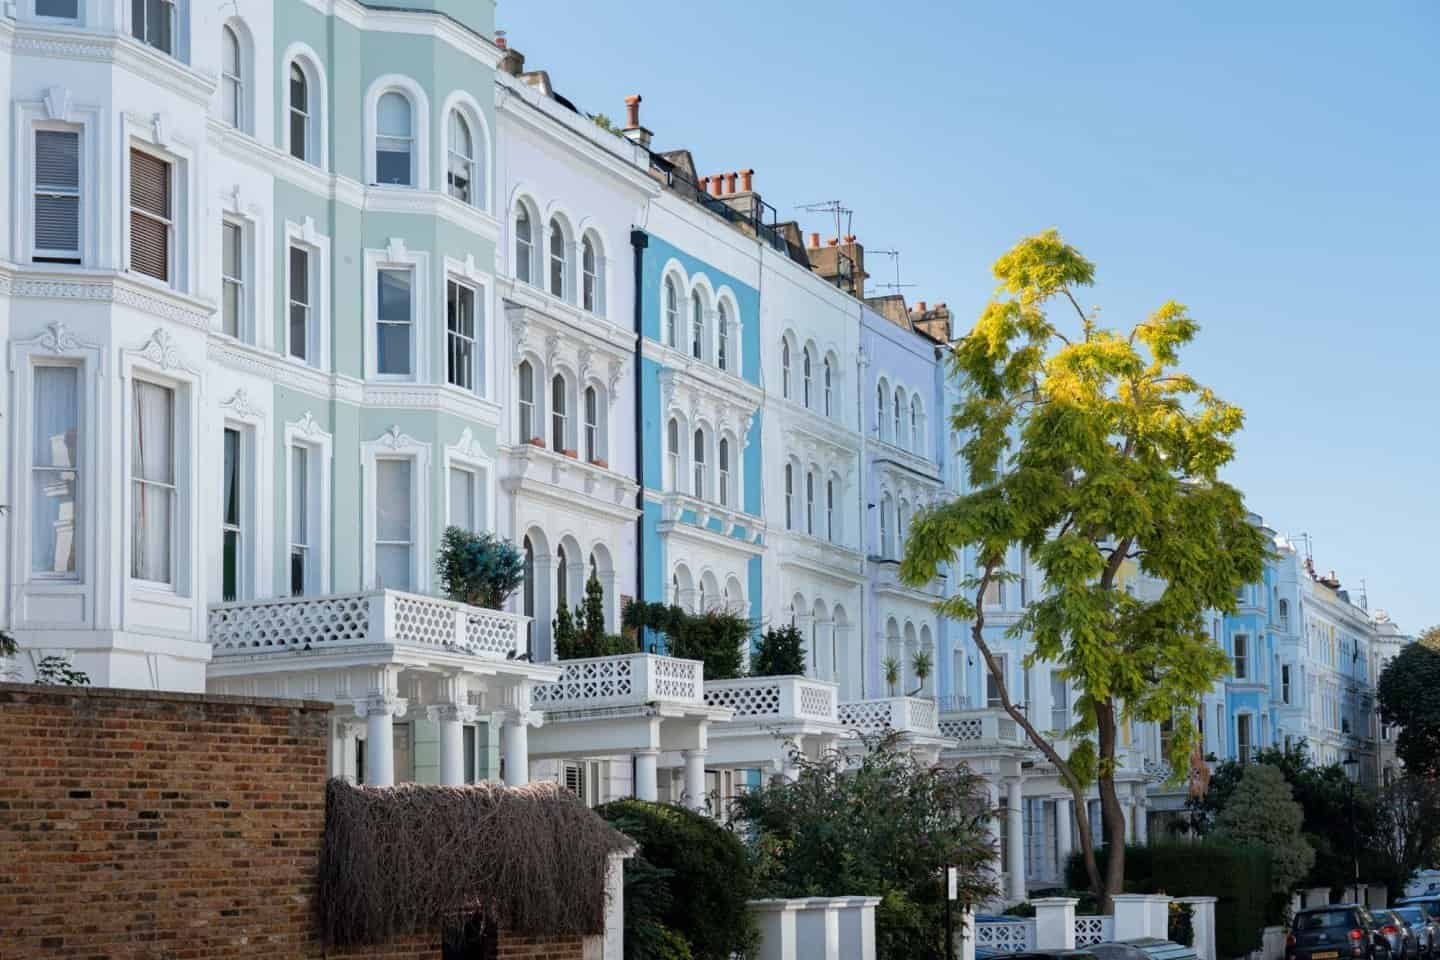 Colvile Terrace colorful houses Notting Hill